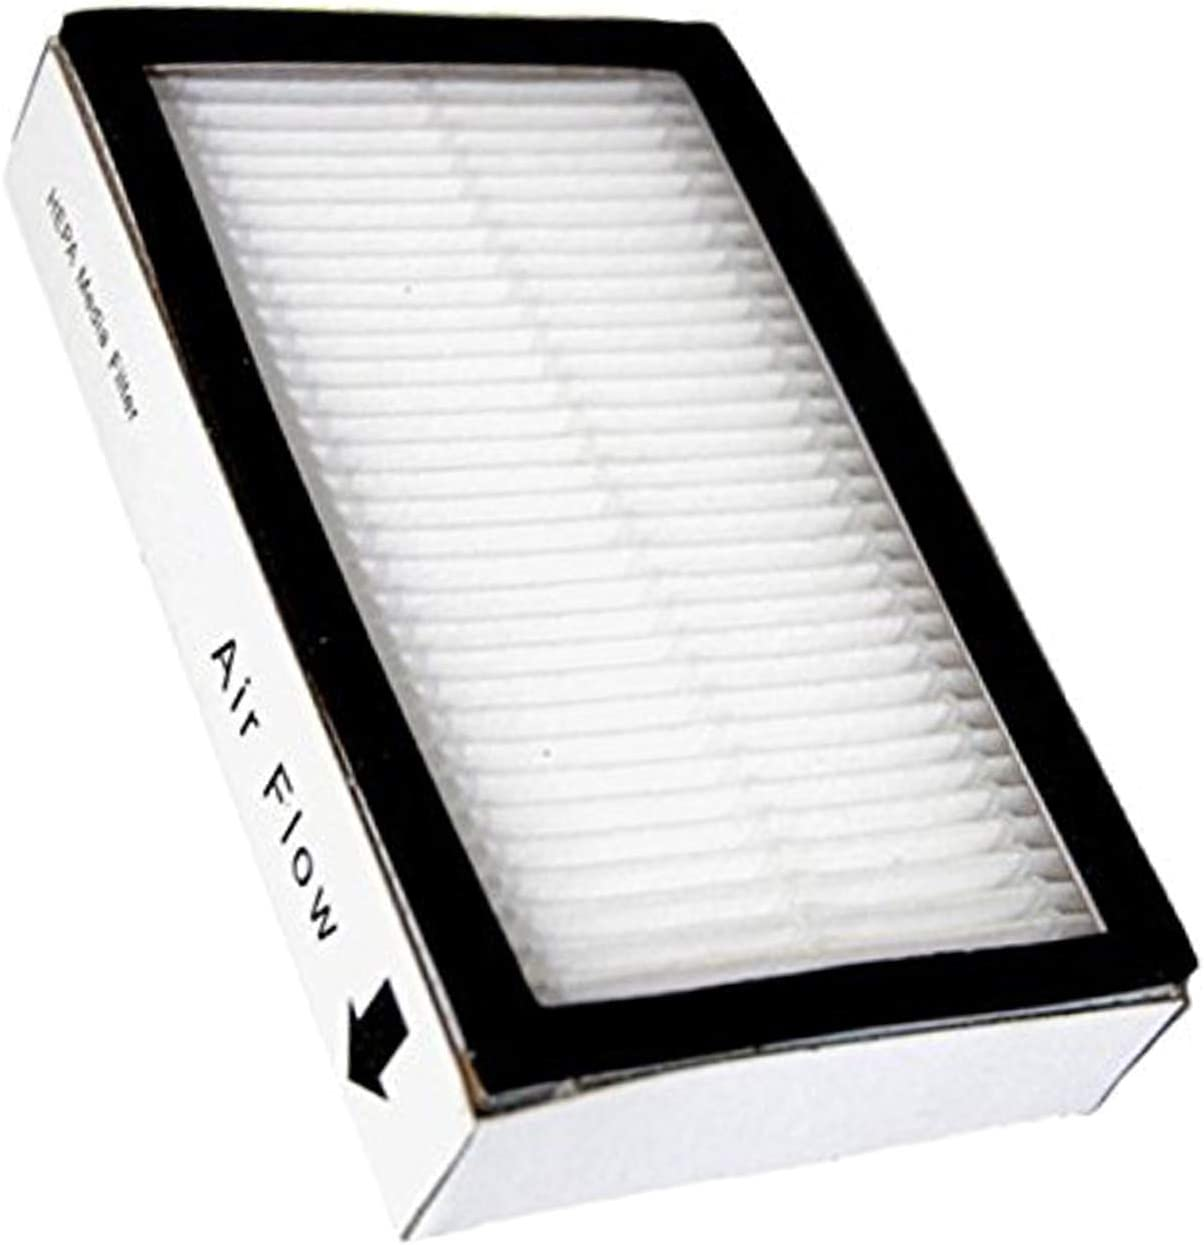 HQRP HEPA Filter Works with Panasonic MC-CG902, MC-UG327, MC-UG323, MC-UG471, MC-CG901, MC-CG973, MC-GG773 Vacuums, Part MC-V194H / MCV194H Replacement